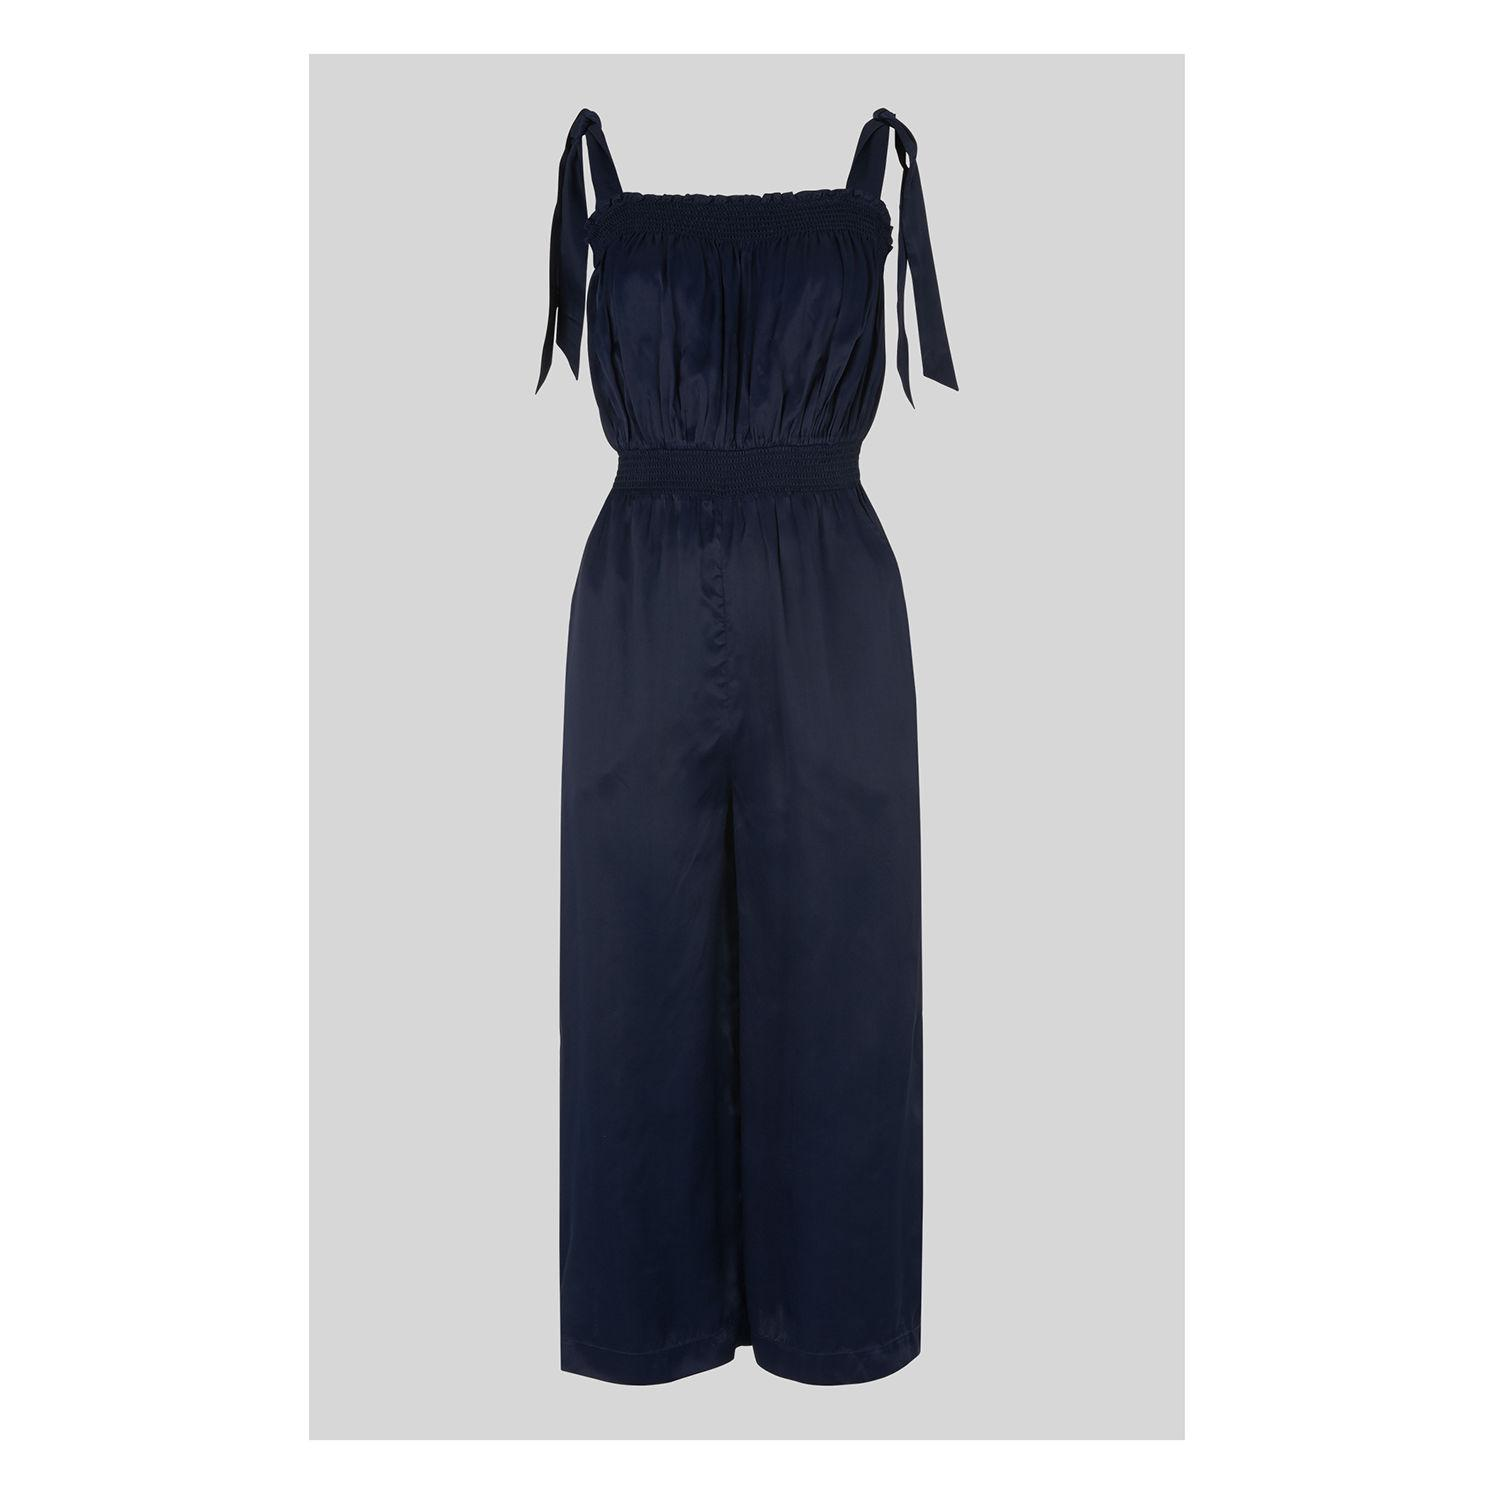 0deae1dc8b19 Lyst - Whistles Ally Tie Shoulder Jumpsuit in Blue